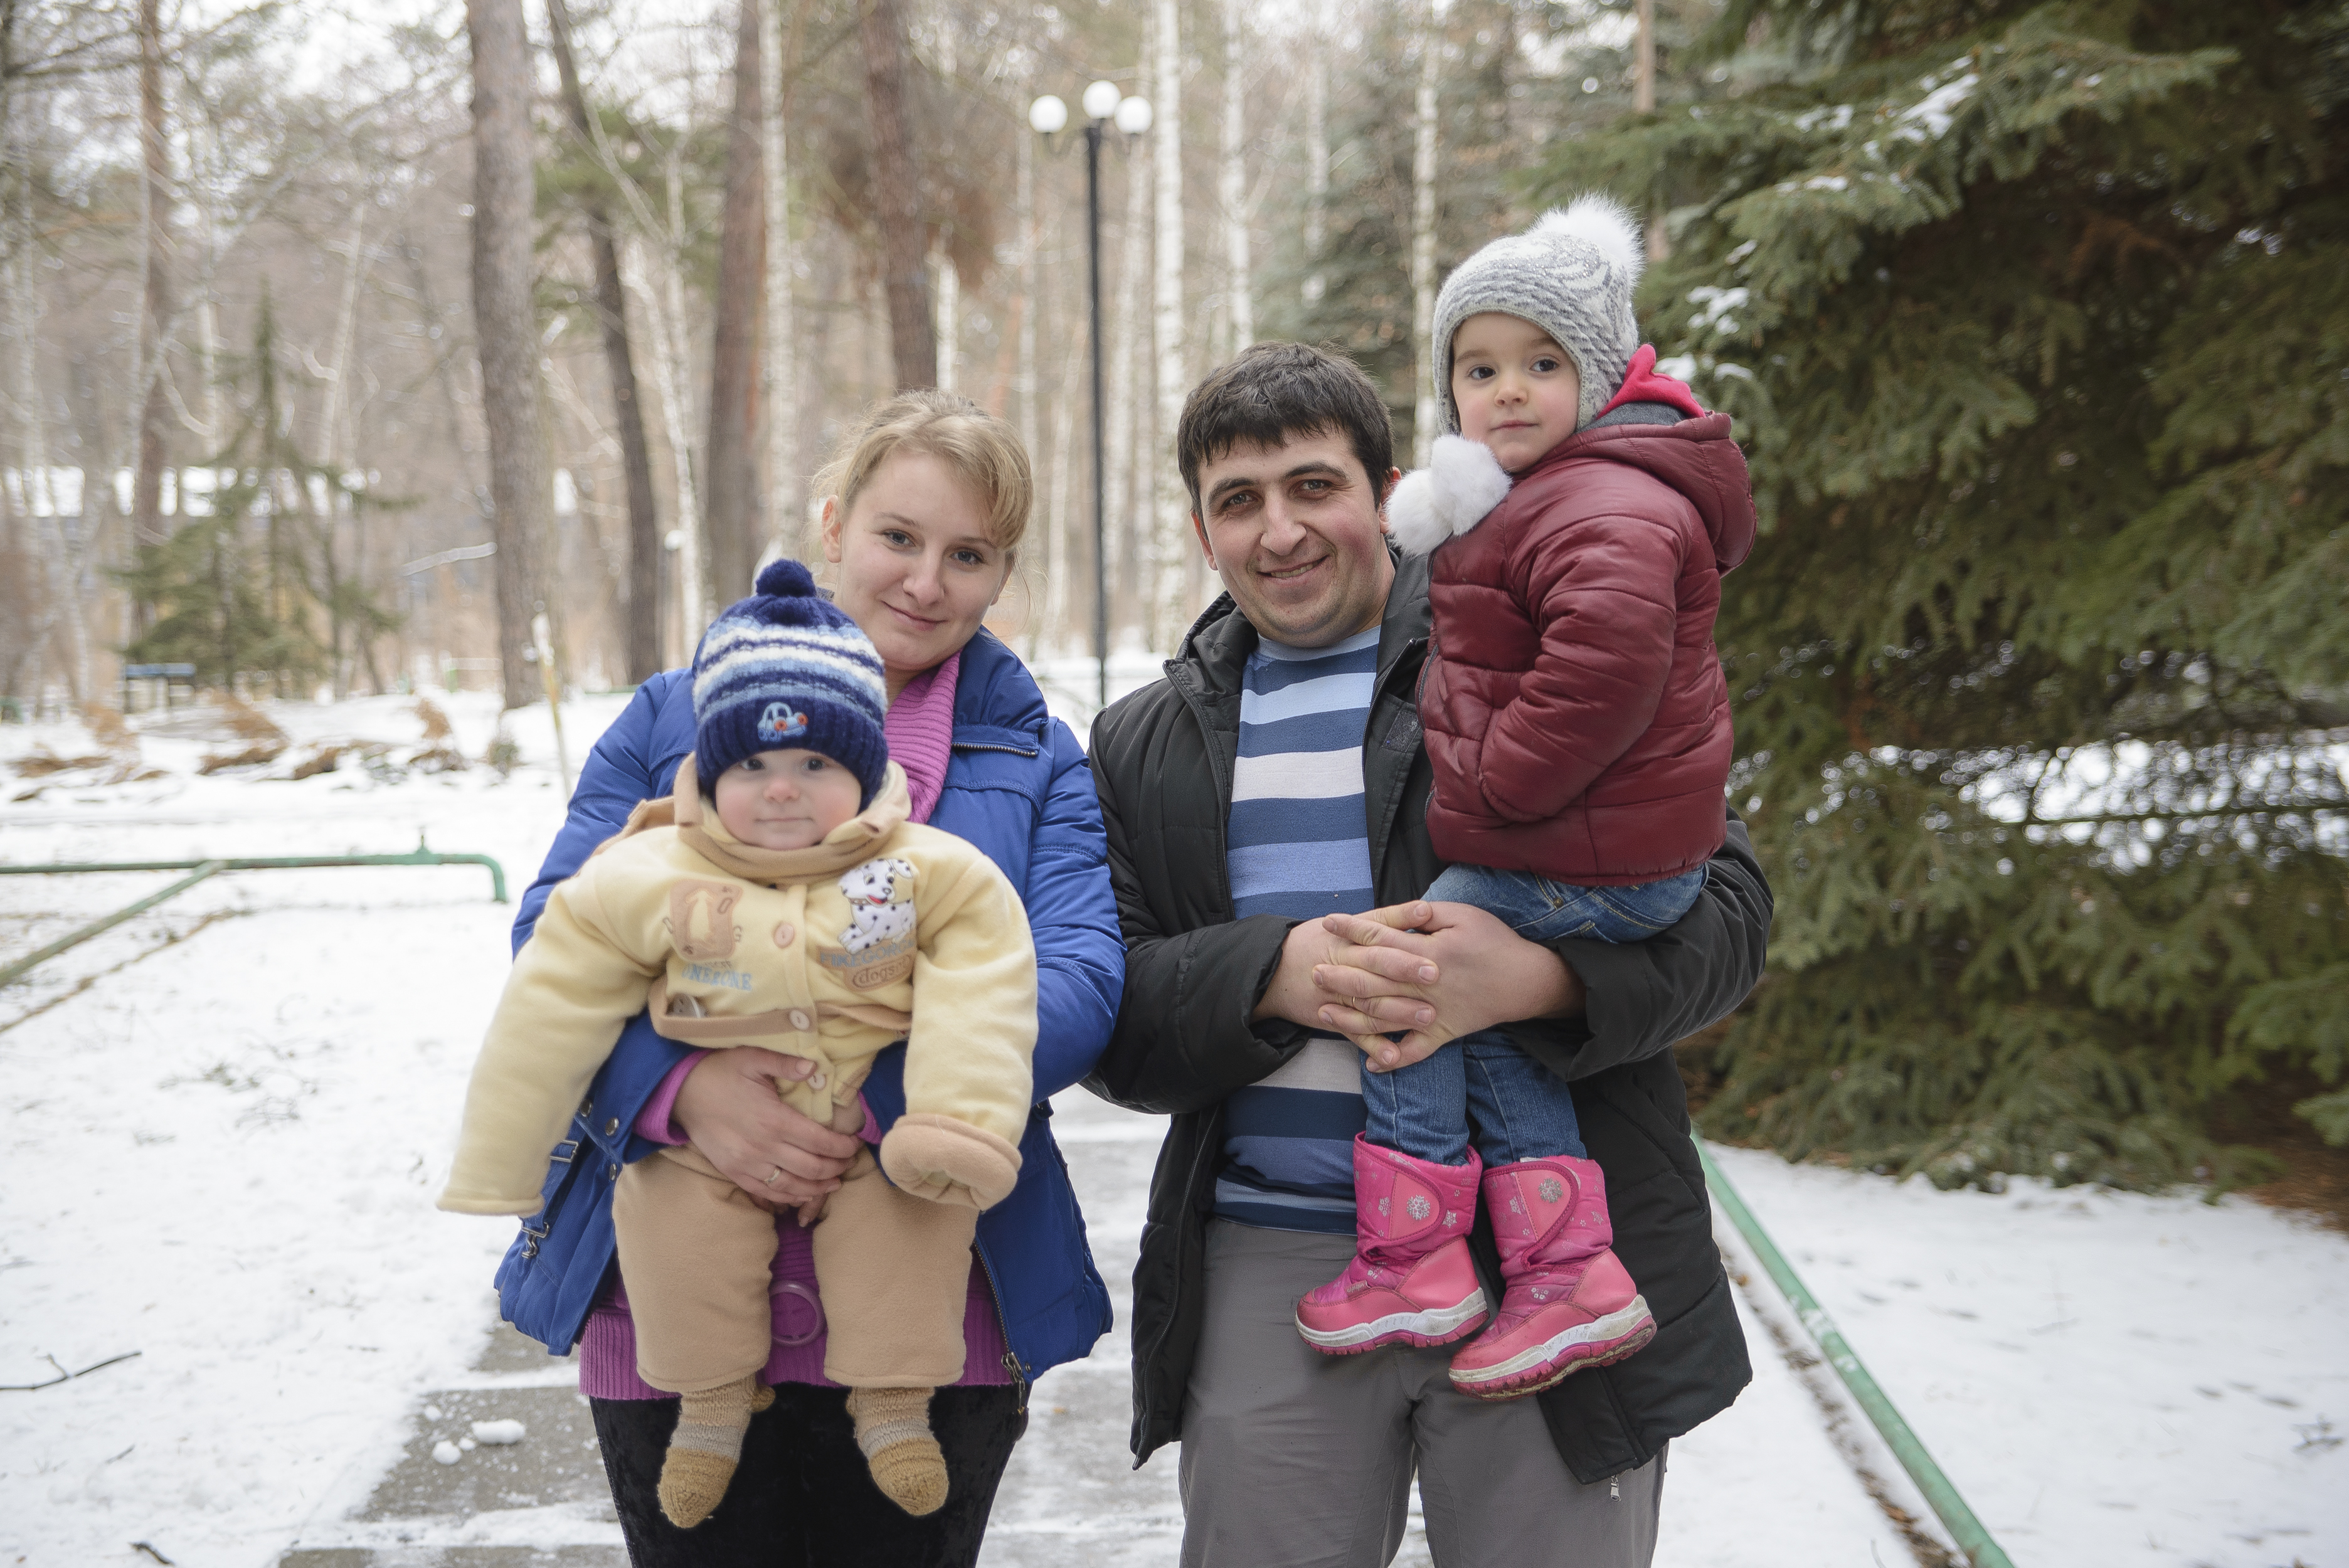 Conflict in Ukraine has uprooted families like Aleksander, Ana and their two children. CRS and Caritas Ukraine are providing humanitarian assistance with your help. Photo by Volodymyr Nechaiev for CRS